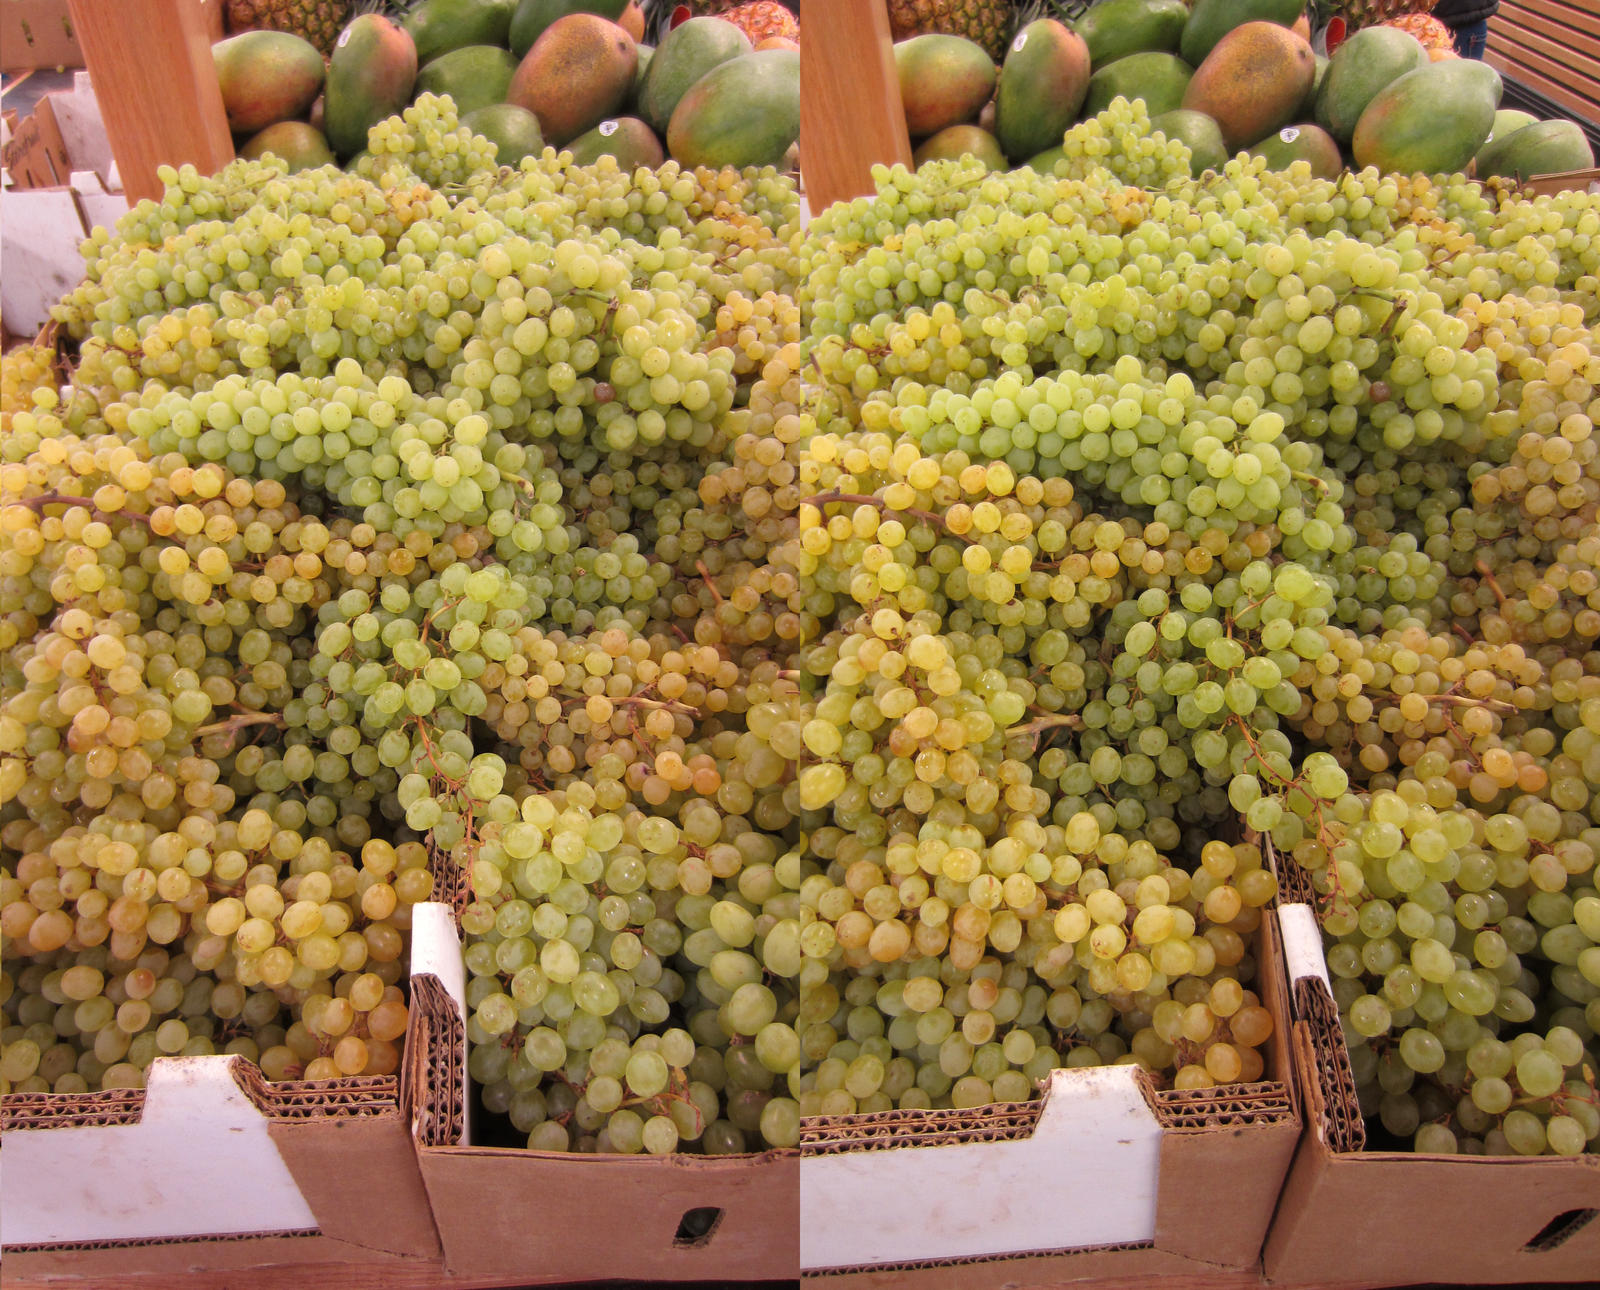 Stereograph - White Grapes by alanbecker